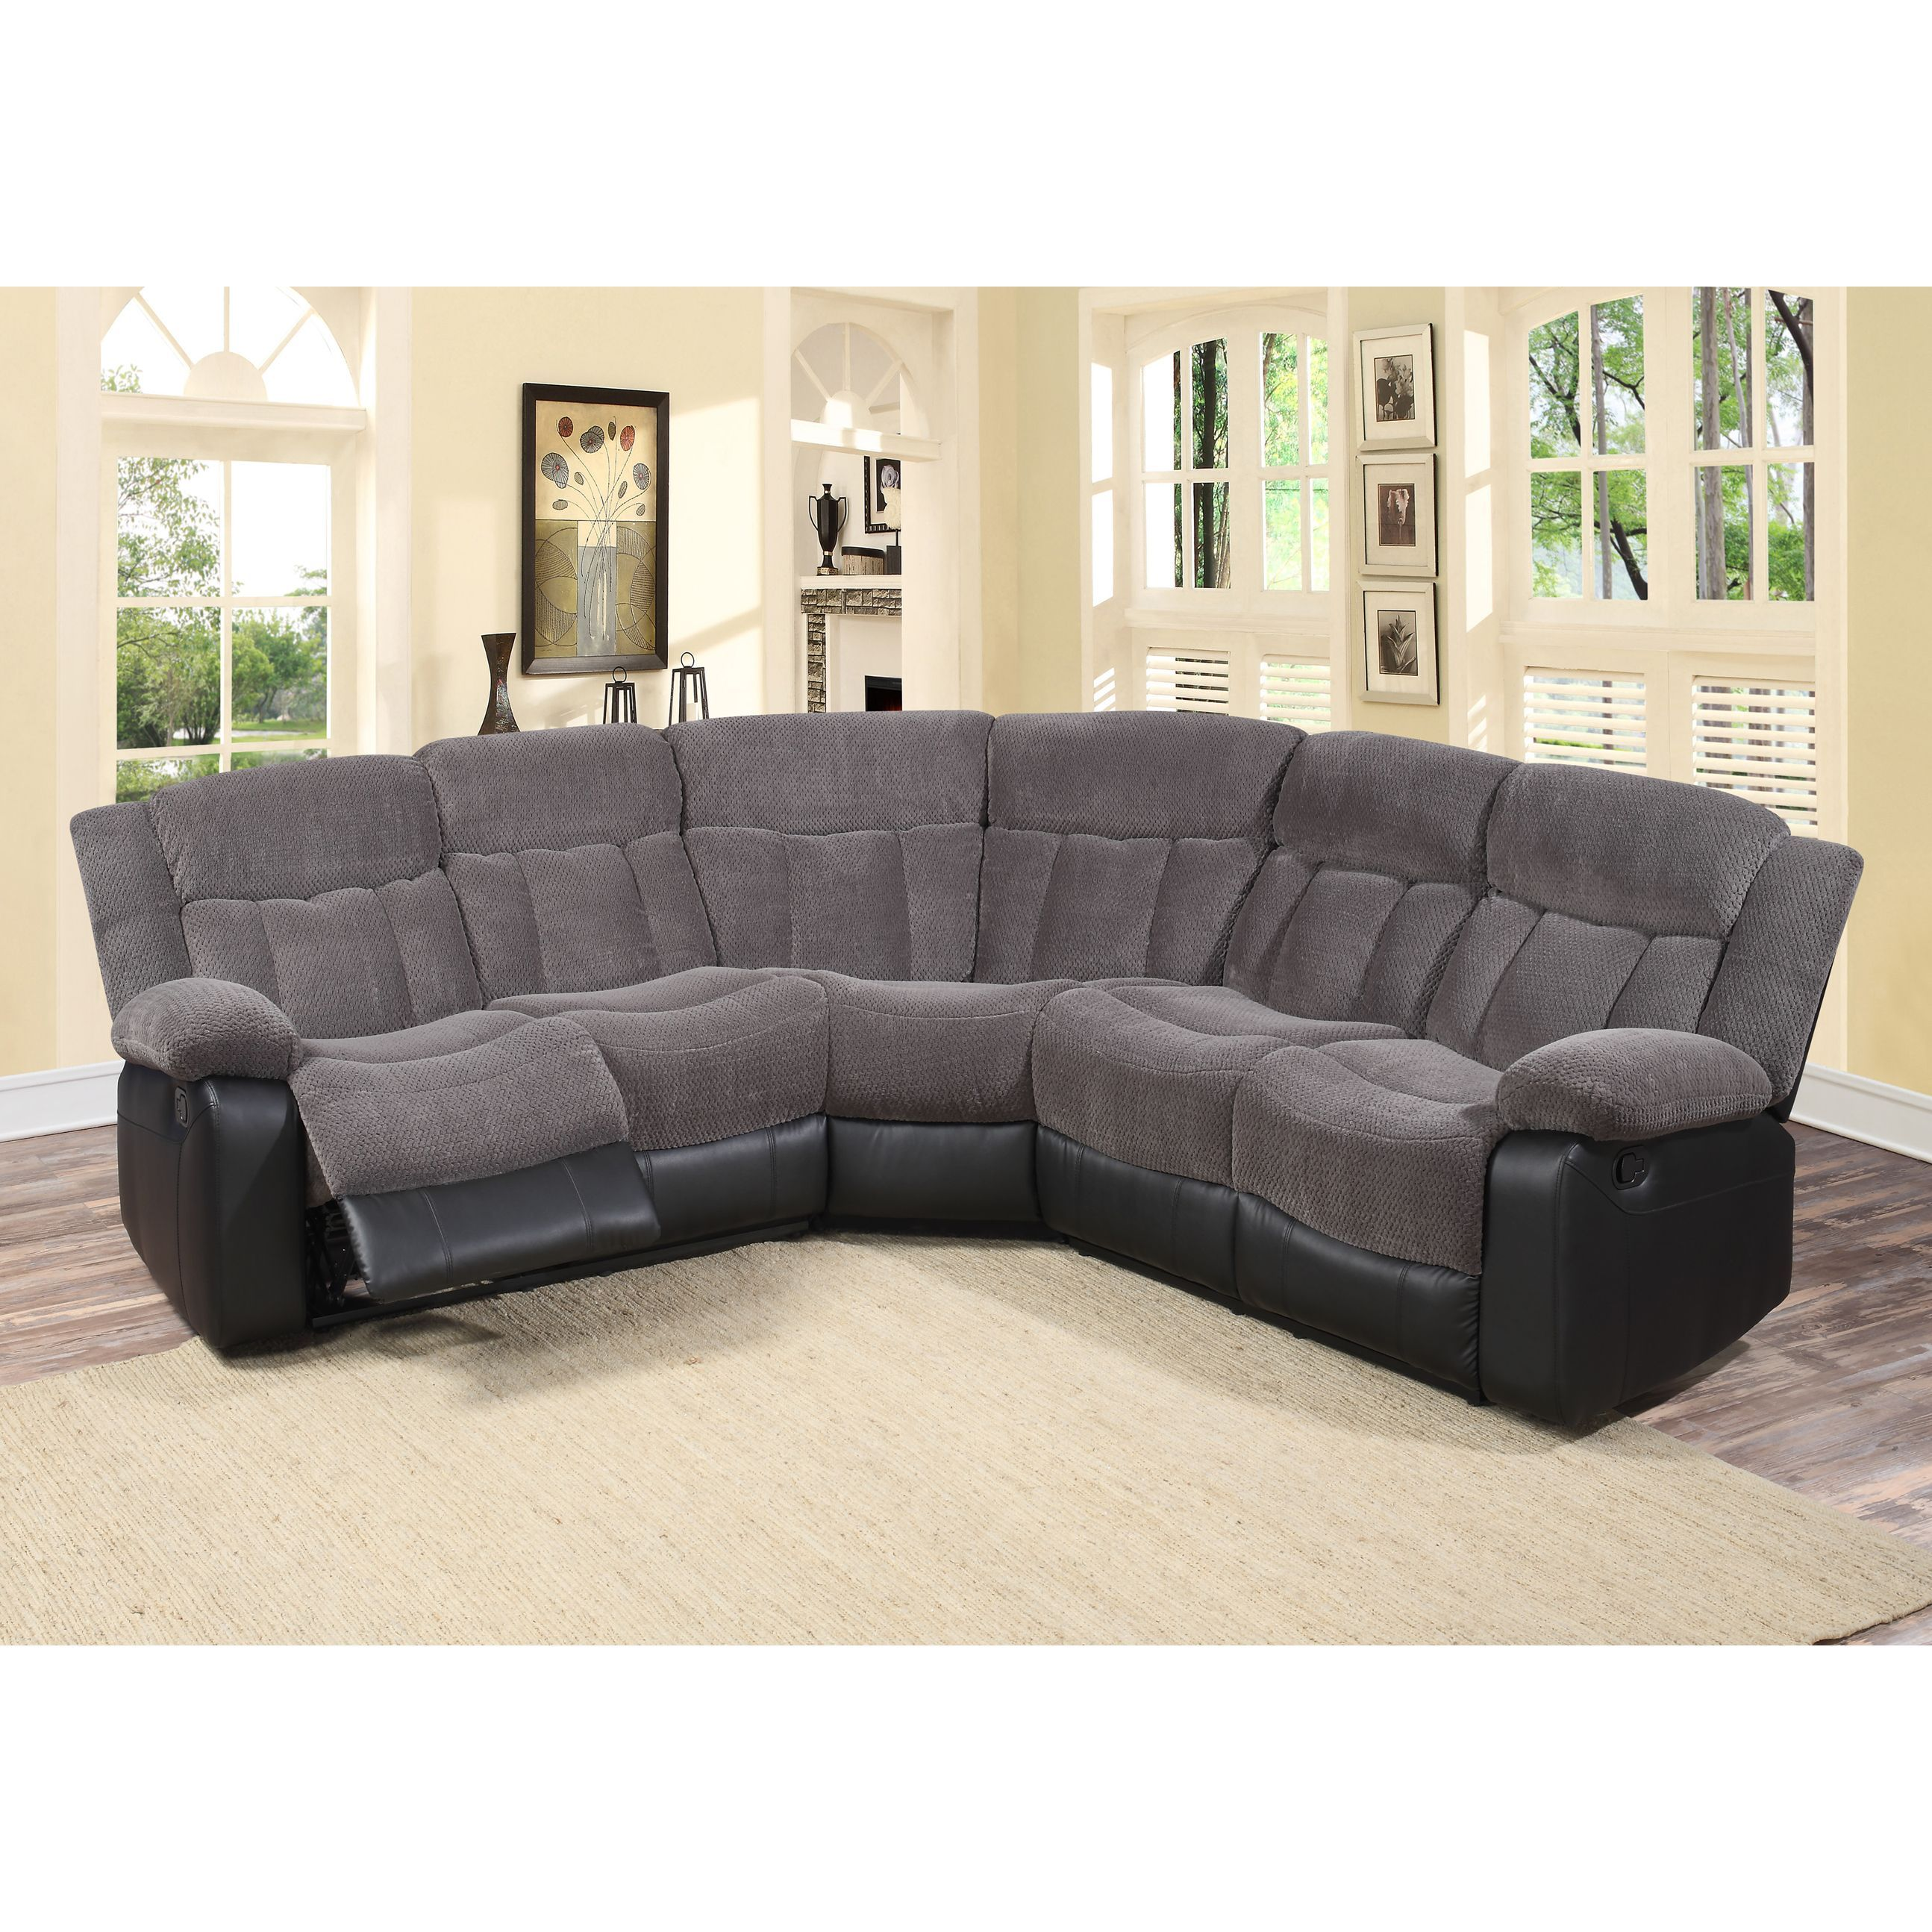 Tonnie 3 Piece And Faux Leather Reclining Sectional Living Room Sofa